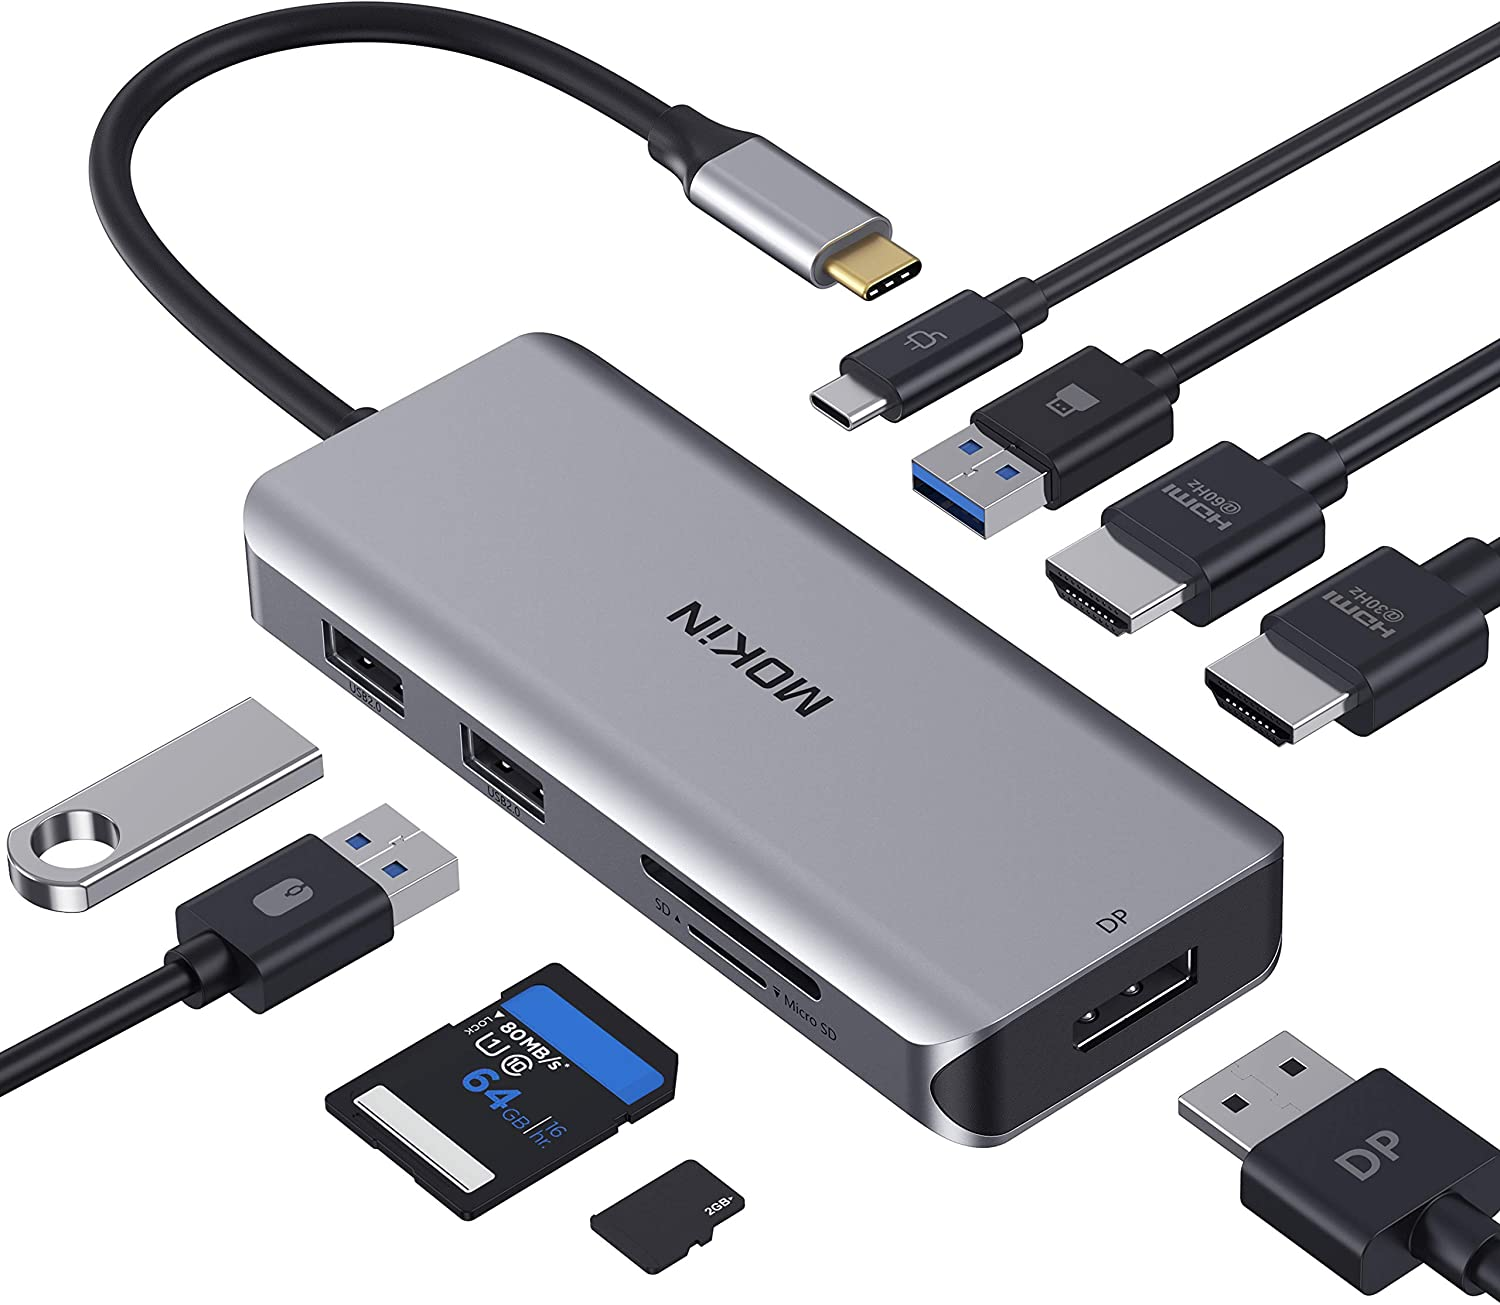 Docking Station, USB C Adapter Dual HDMI, 9 in 1 Triple Display Multiport Adapter Dongle with 2 HDMI 4K, DisplayPort, 3 USB, 100W PD, SD/TF Card Reader for MacBook Pro Air Type C Laptops